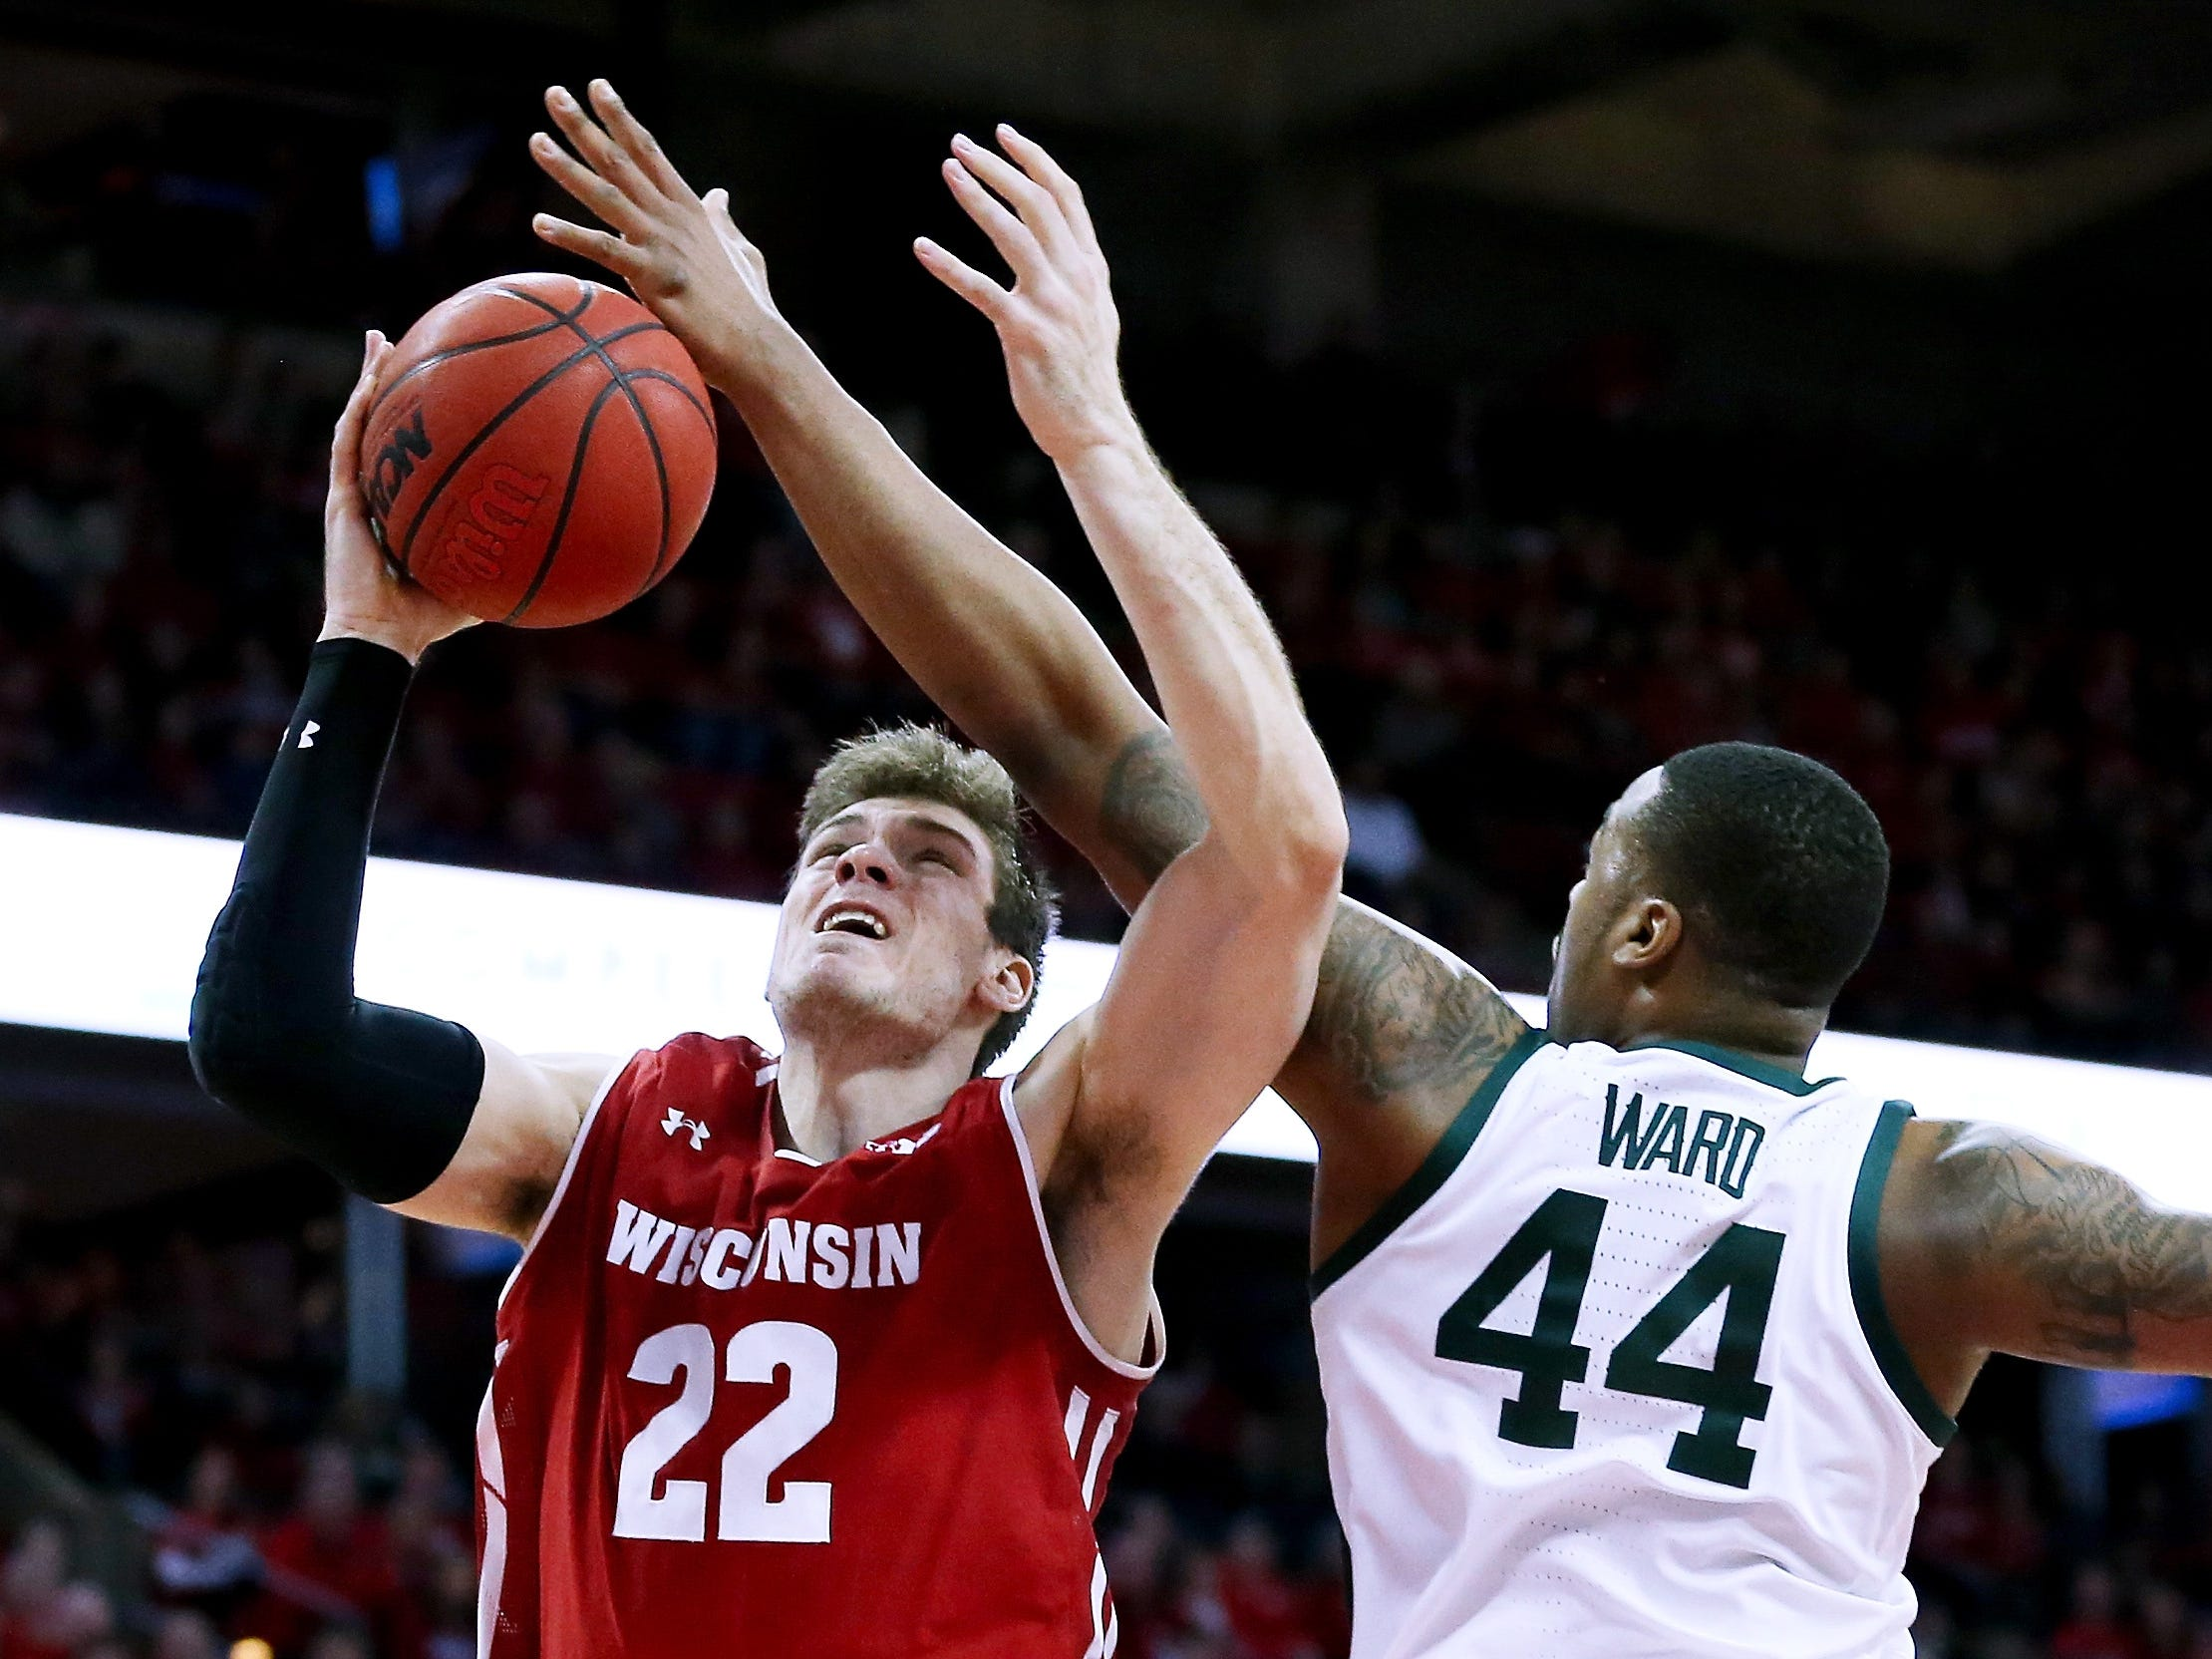 Michigan State's Nick Ward (44) blocks a shot attempt by Wisconsin's Ethan Happ (22) in the first half.